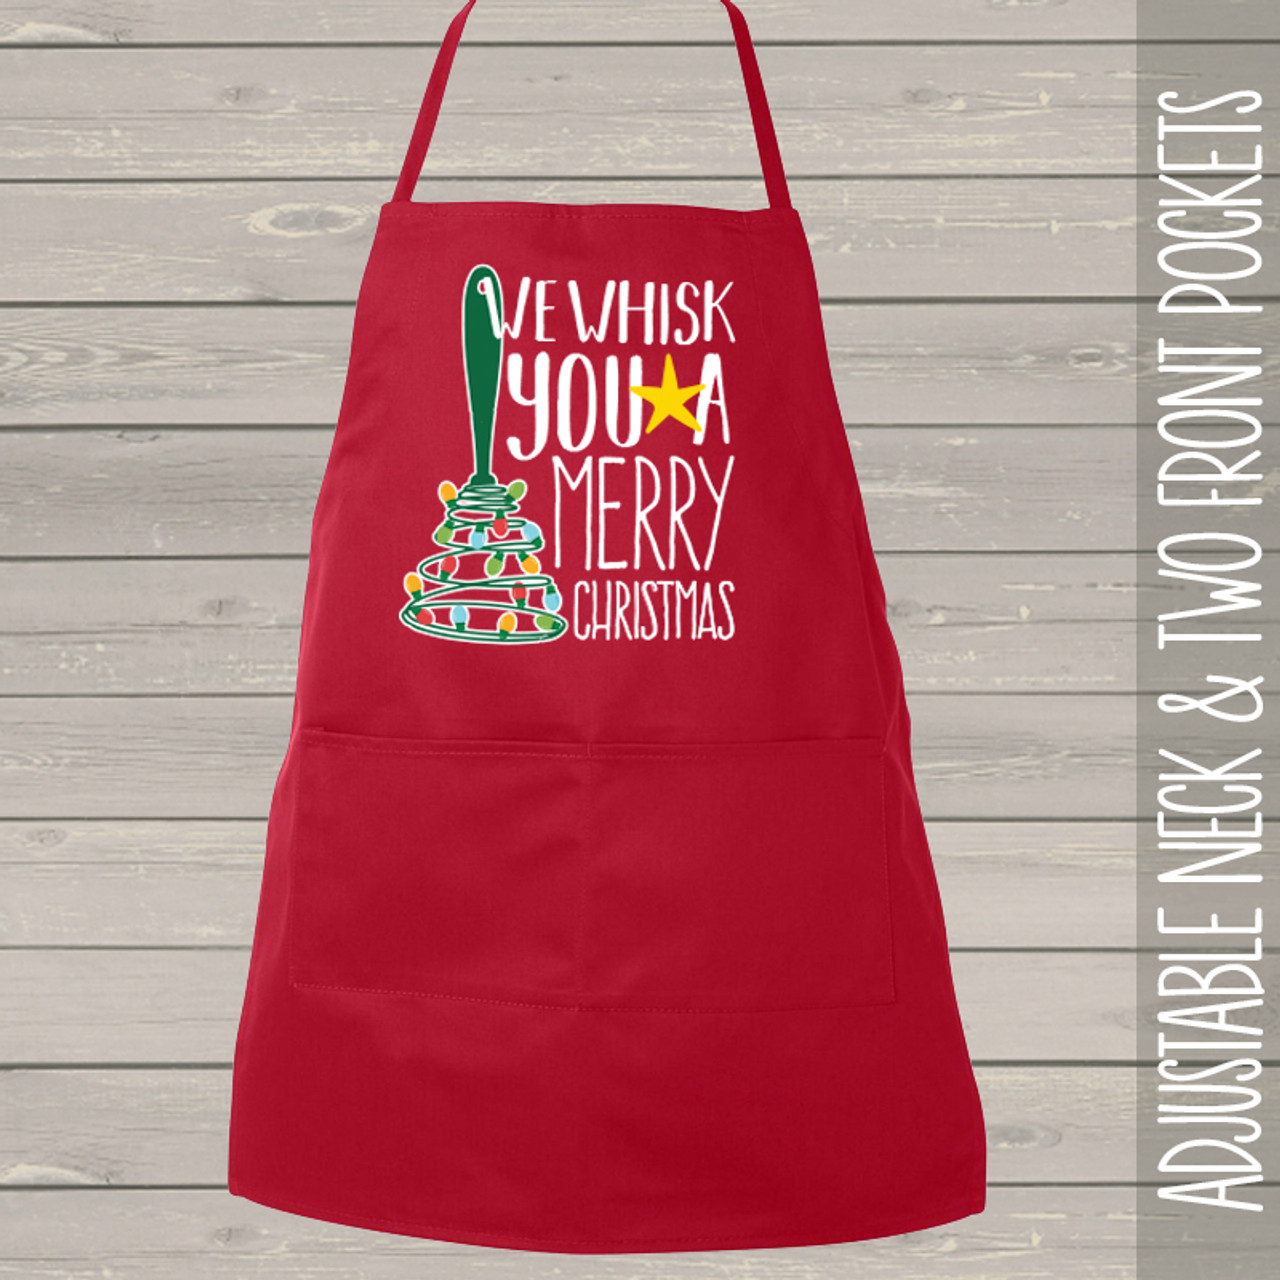 we whisk you a merry christmas apron - Christmas Apron